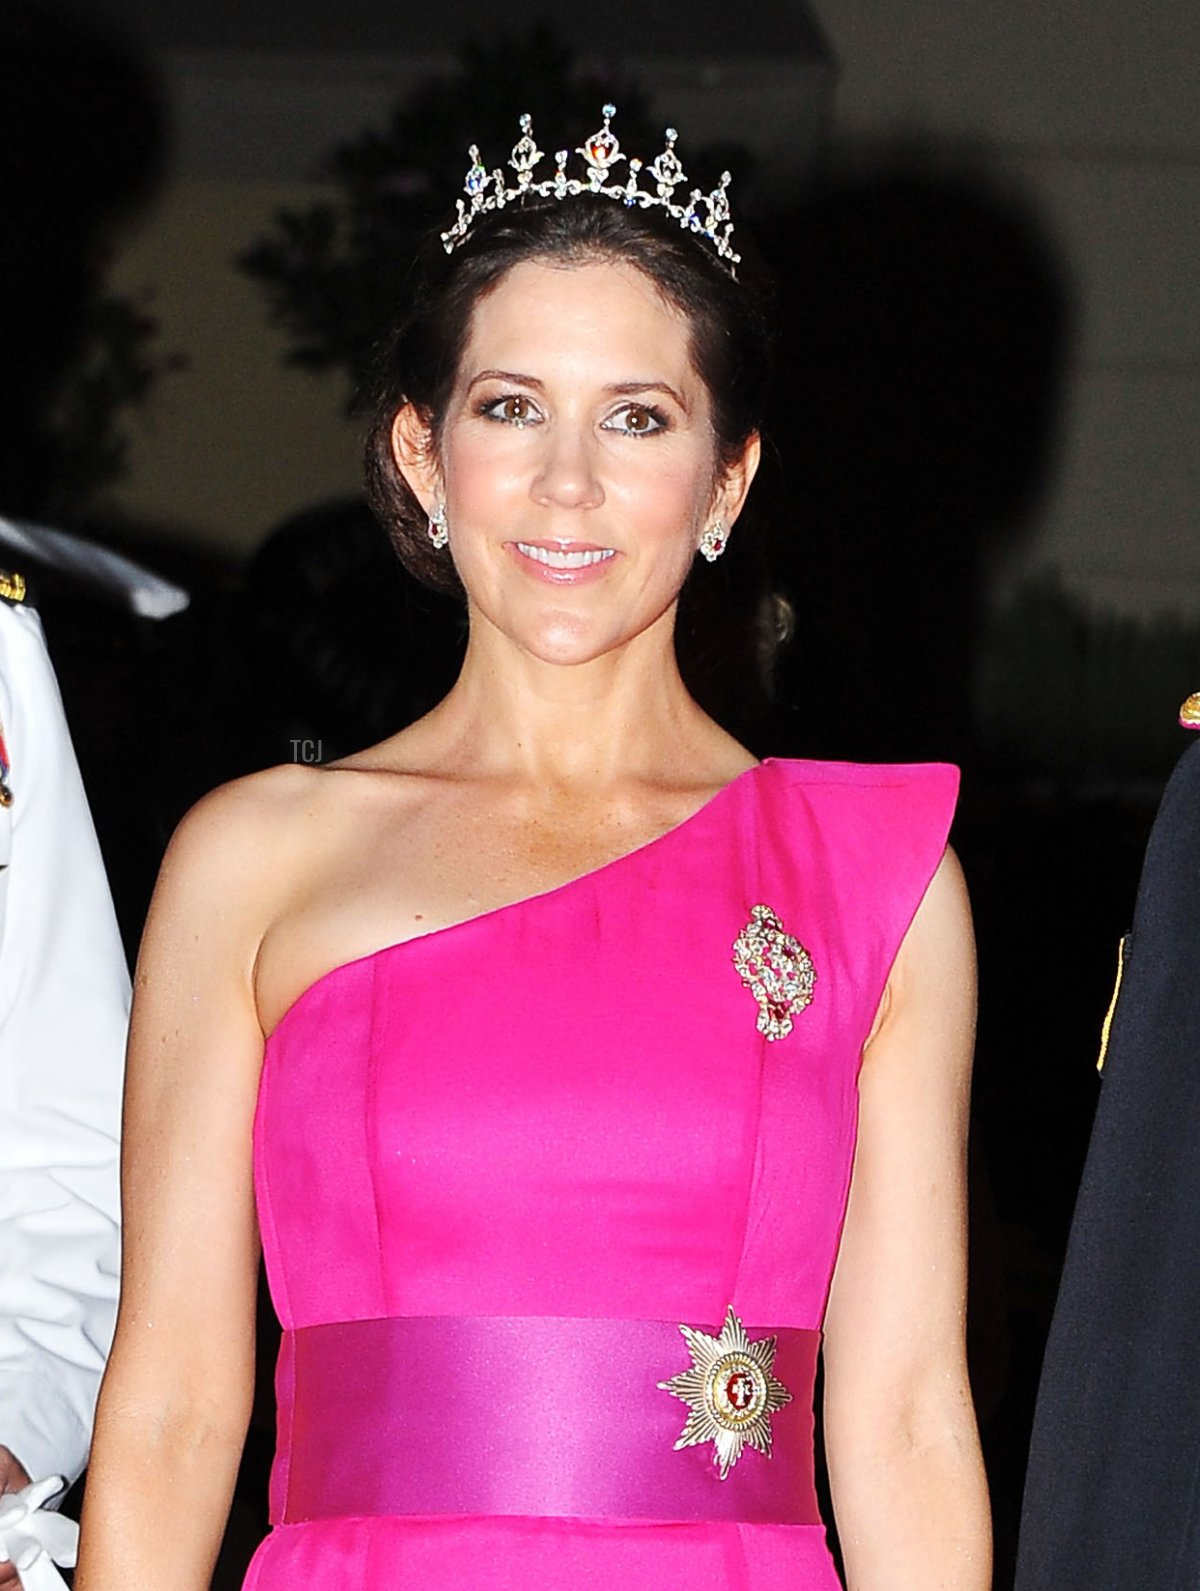 Princess Mary of Denmark and Prince Philippe of Belgium attend a dinner at Opera terraces after the religious wedding ceremony of Prince Albert II of Monaco and Princess Charlene of Monaco on July 2, 2011 in Monaco